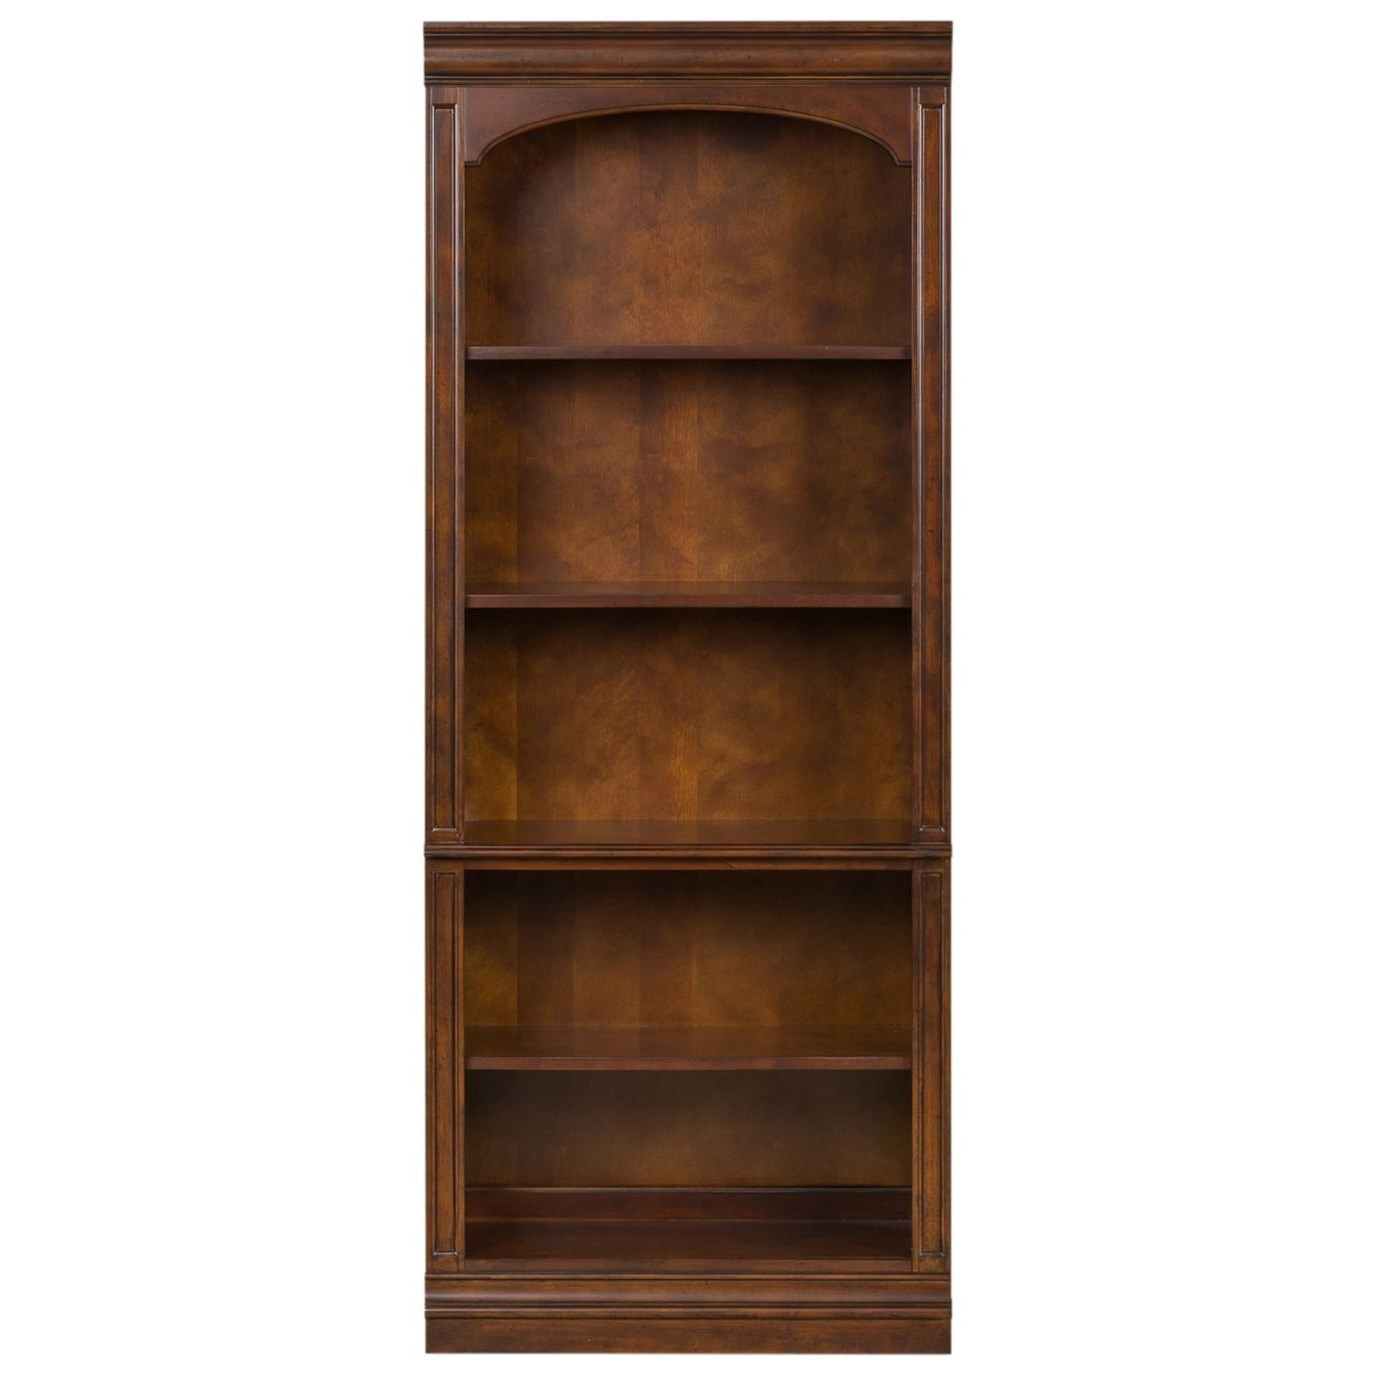 Brayton Manor Jr Executive Open Bookcase by Libby at Walker's Furniture